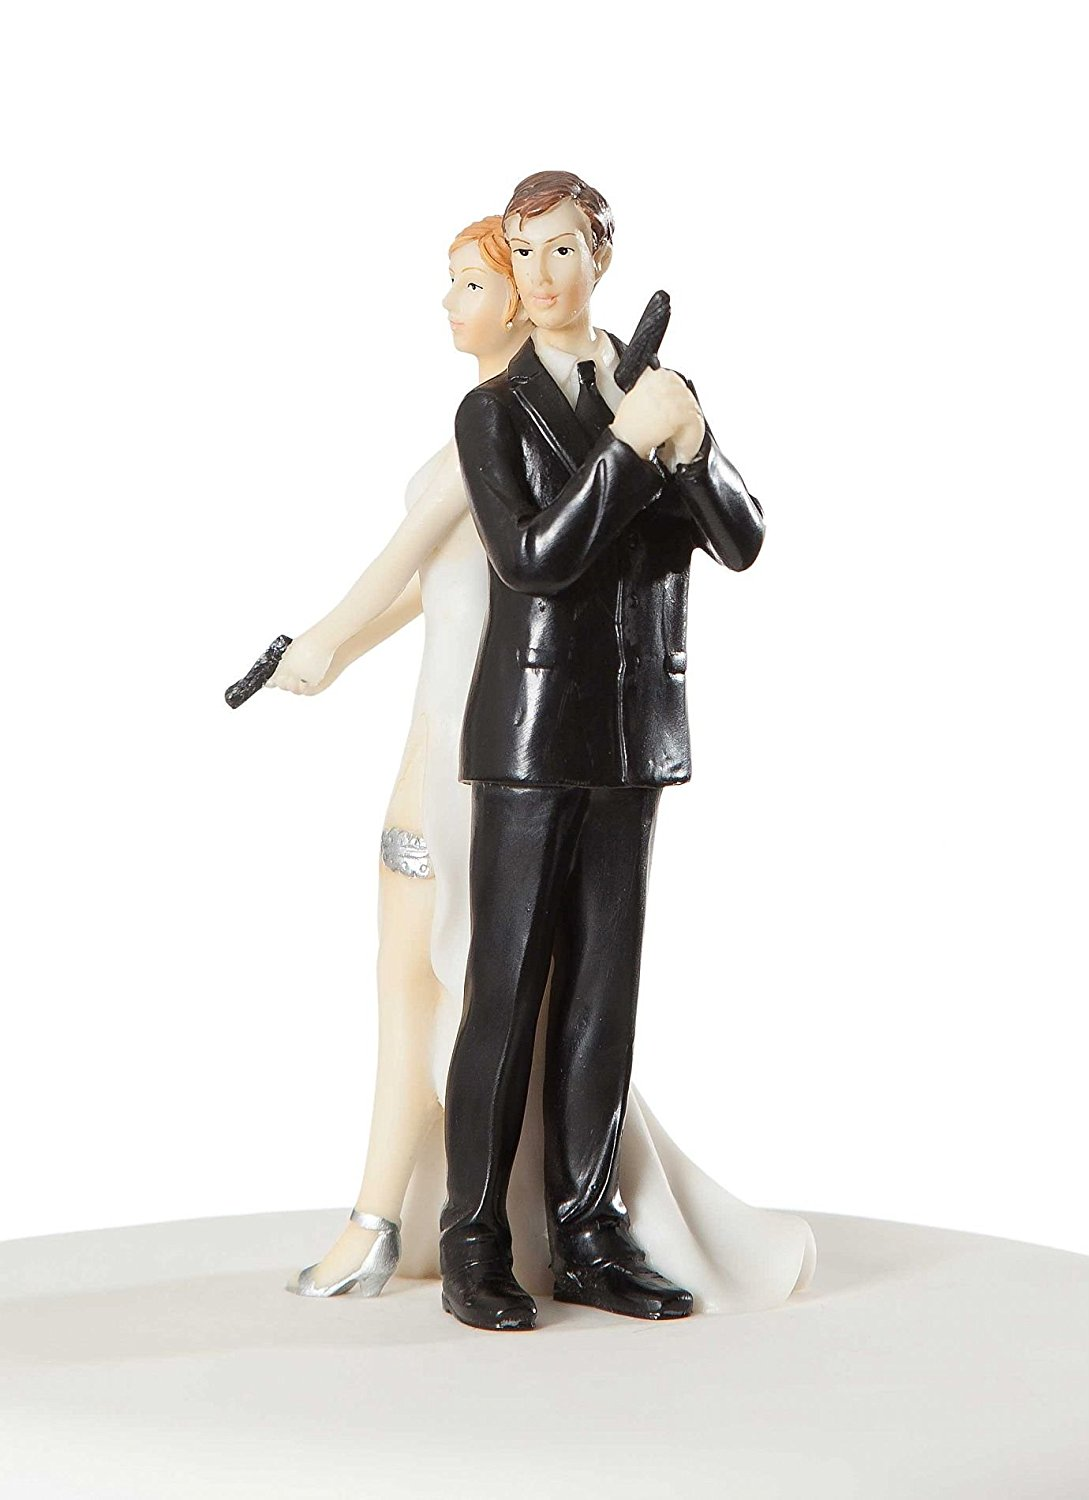 Super sexy spy wedding bride and groom cake topper figurine 2